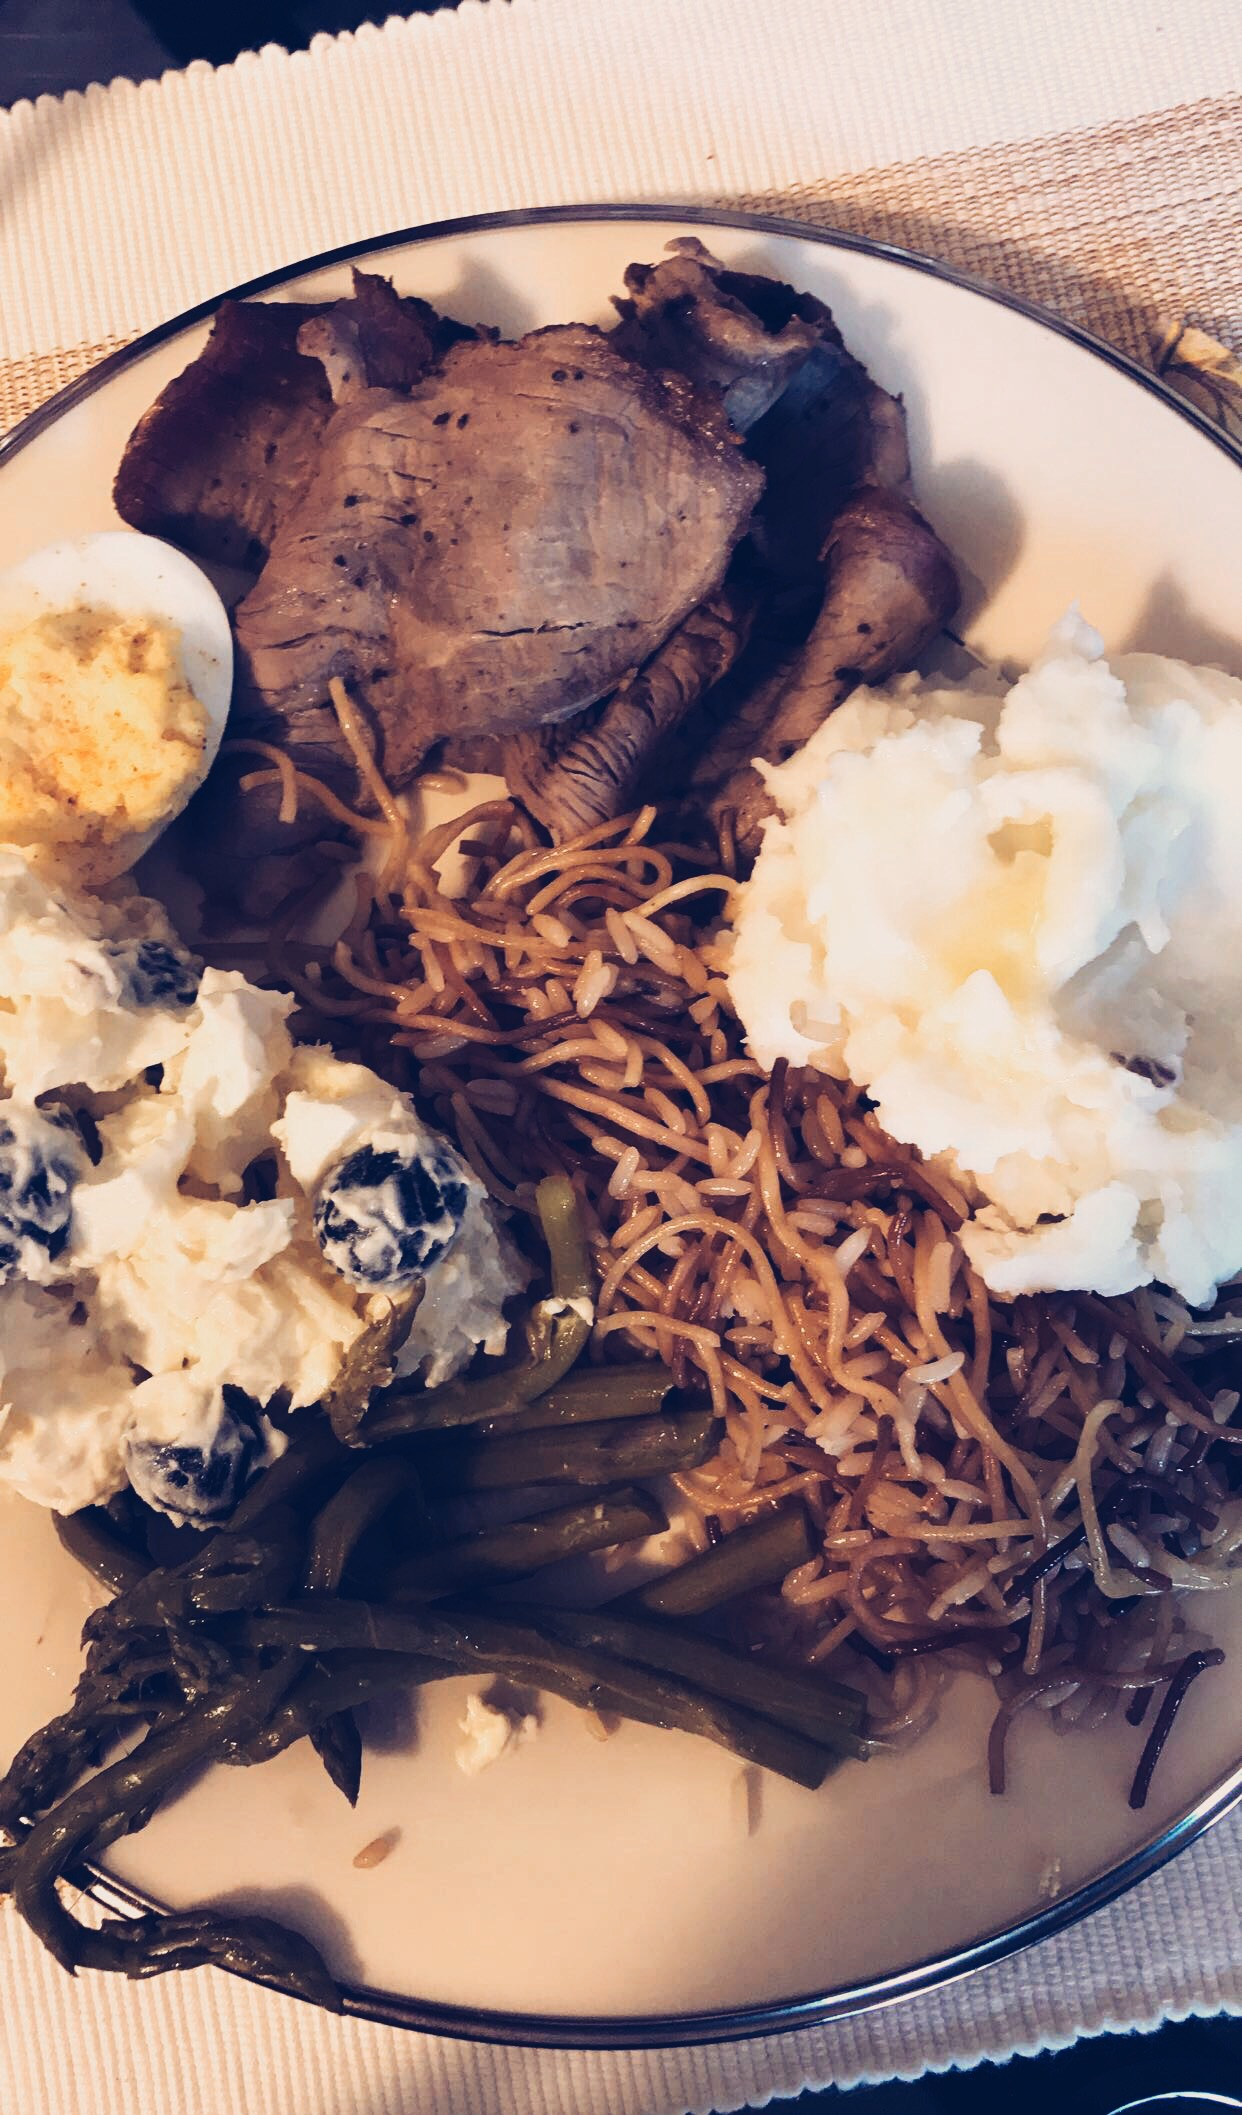 One of the delicious Thanksgiving meals I got to enjoy (yes I prefer tri-tip over turkey)